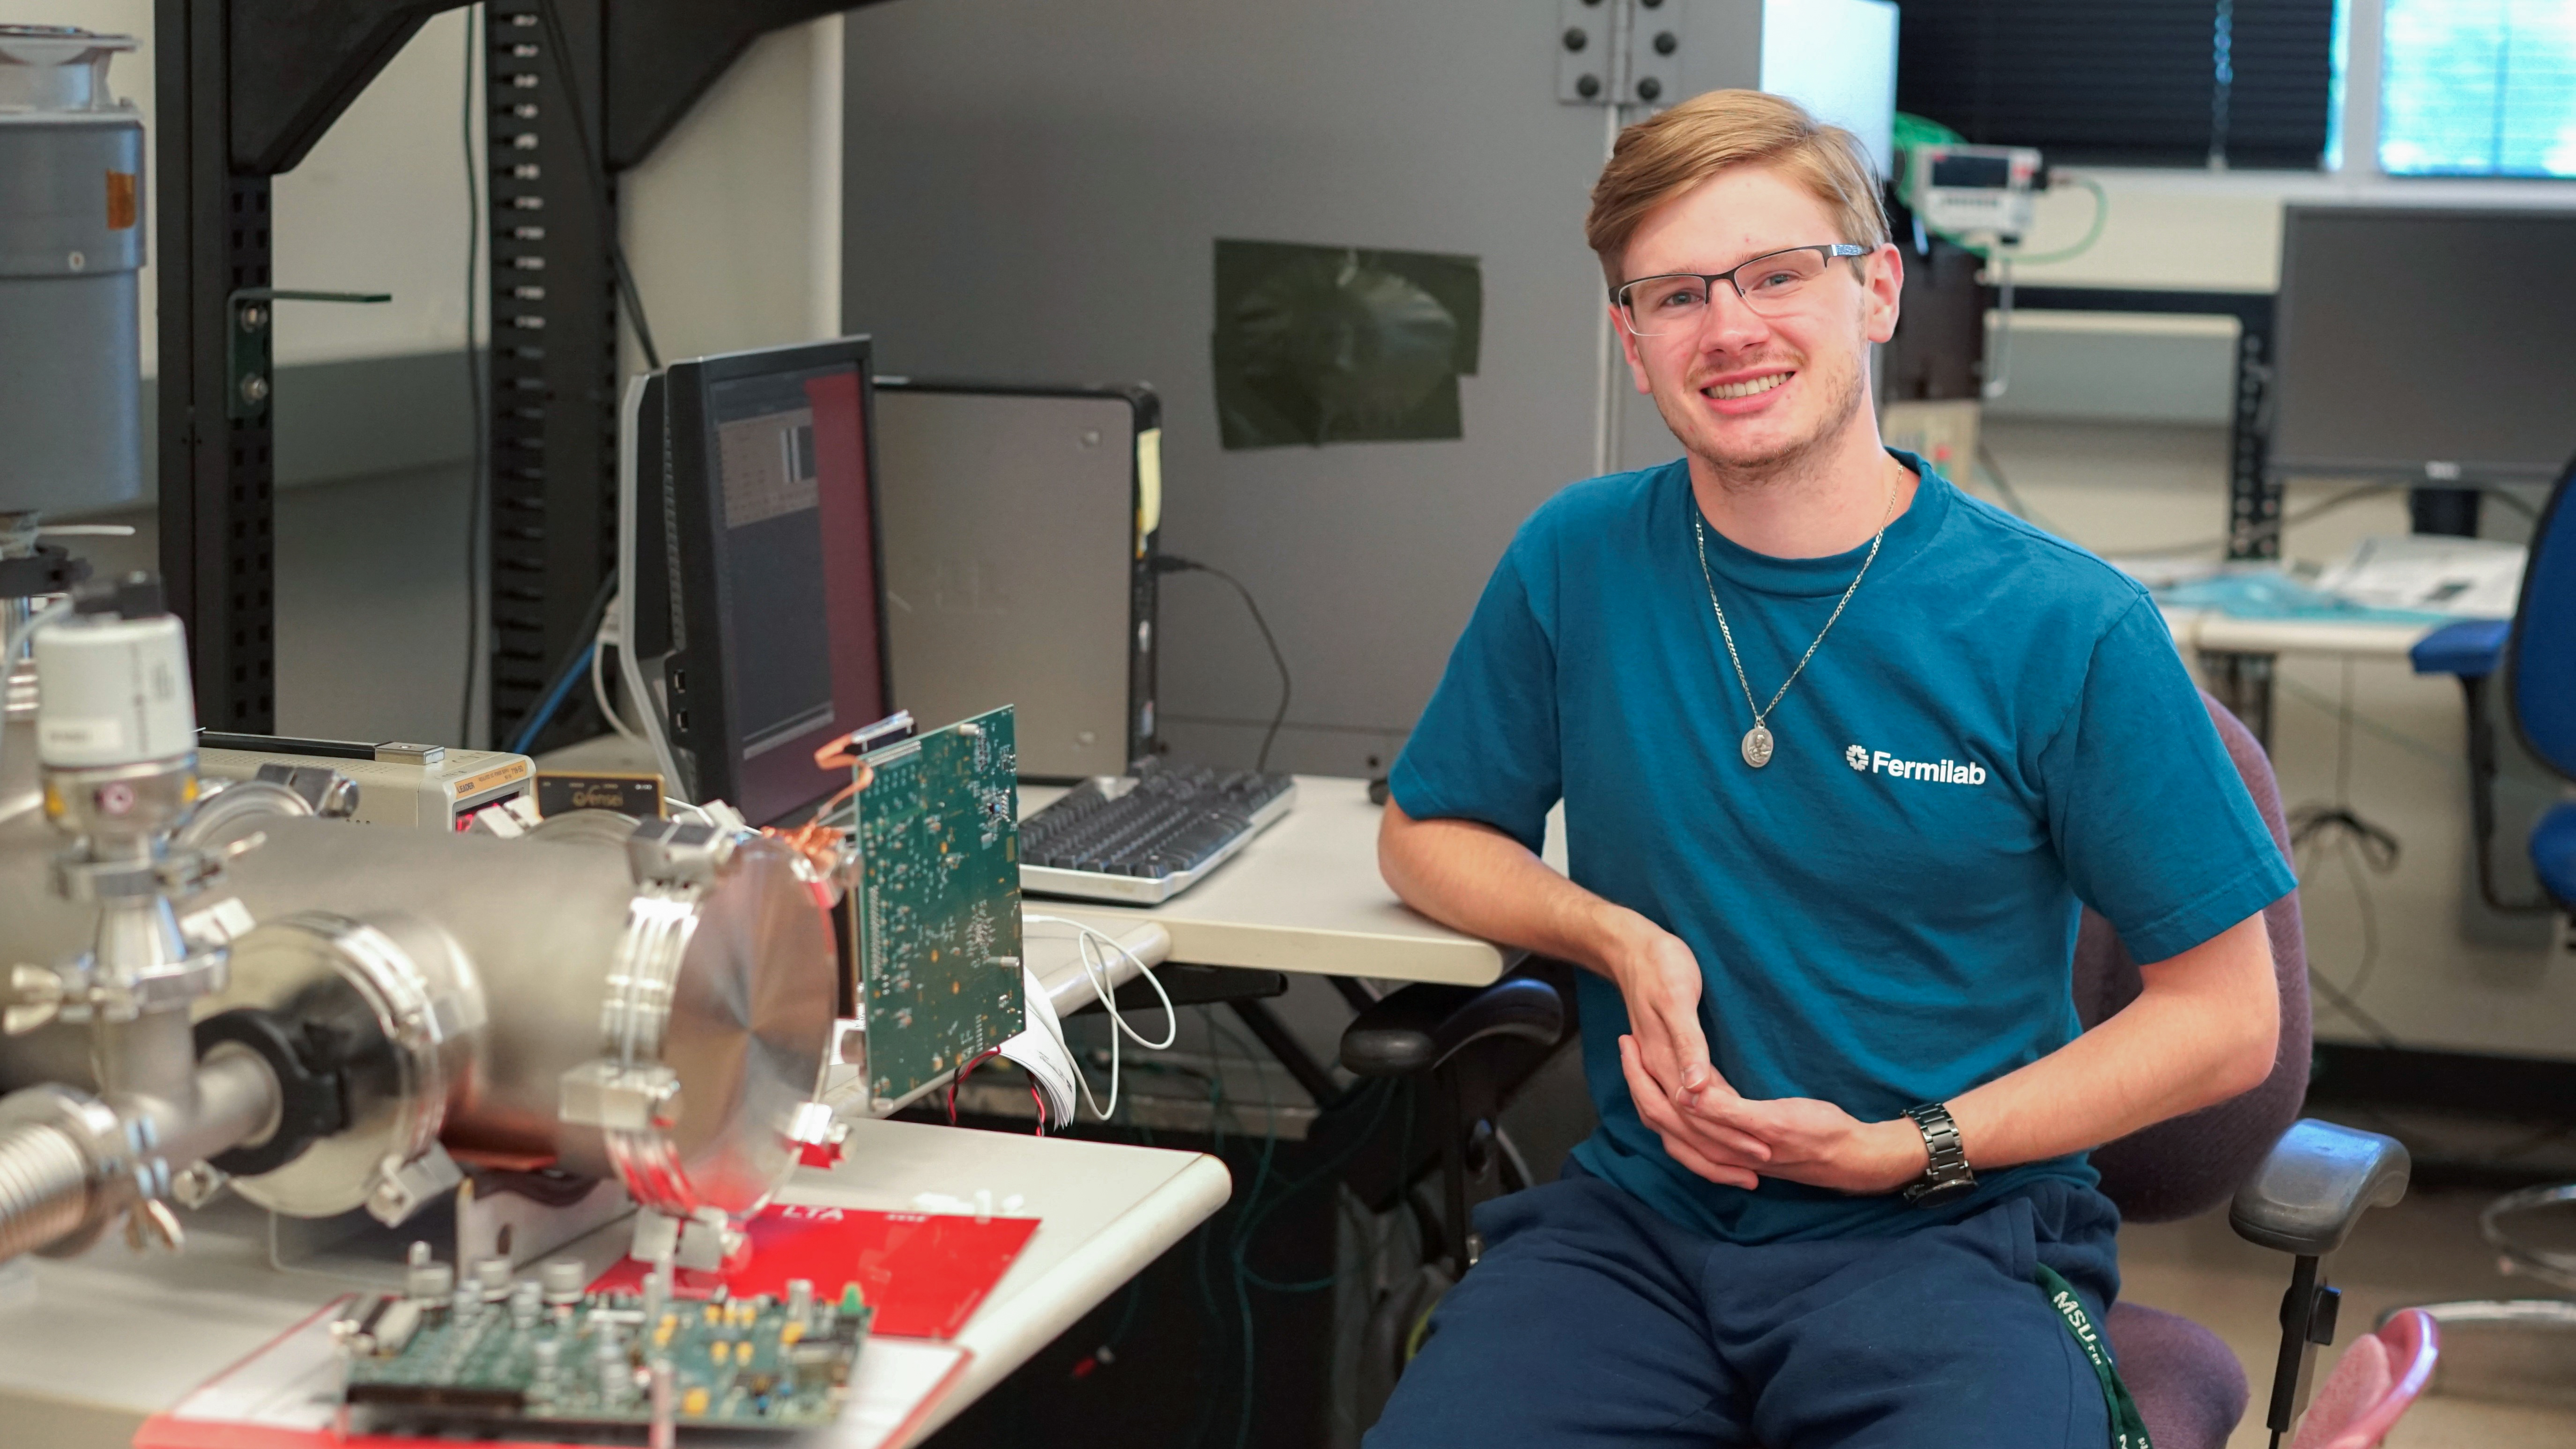 (1/4) Dylan Smith is a research intern under scientist Erik Ramberg. He hails from Dearborn, Michigan, and is currently a senior at Michigan State University. In the test room at SiDet, there is a vacuum chamber with a charge-coupled device (CCD) coated in boron-10. His research goal is to characterize ultracold neutron events that occur when the neutrons hit the boron-10 and come into contact with the CCD. He's also been working with software that simulates particle tracks in silicon, with the eventual goal of designing a method to calculate the incident angle of alpha particles that hit a silicon target. people Photo: Leticia Shaddix